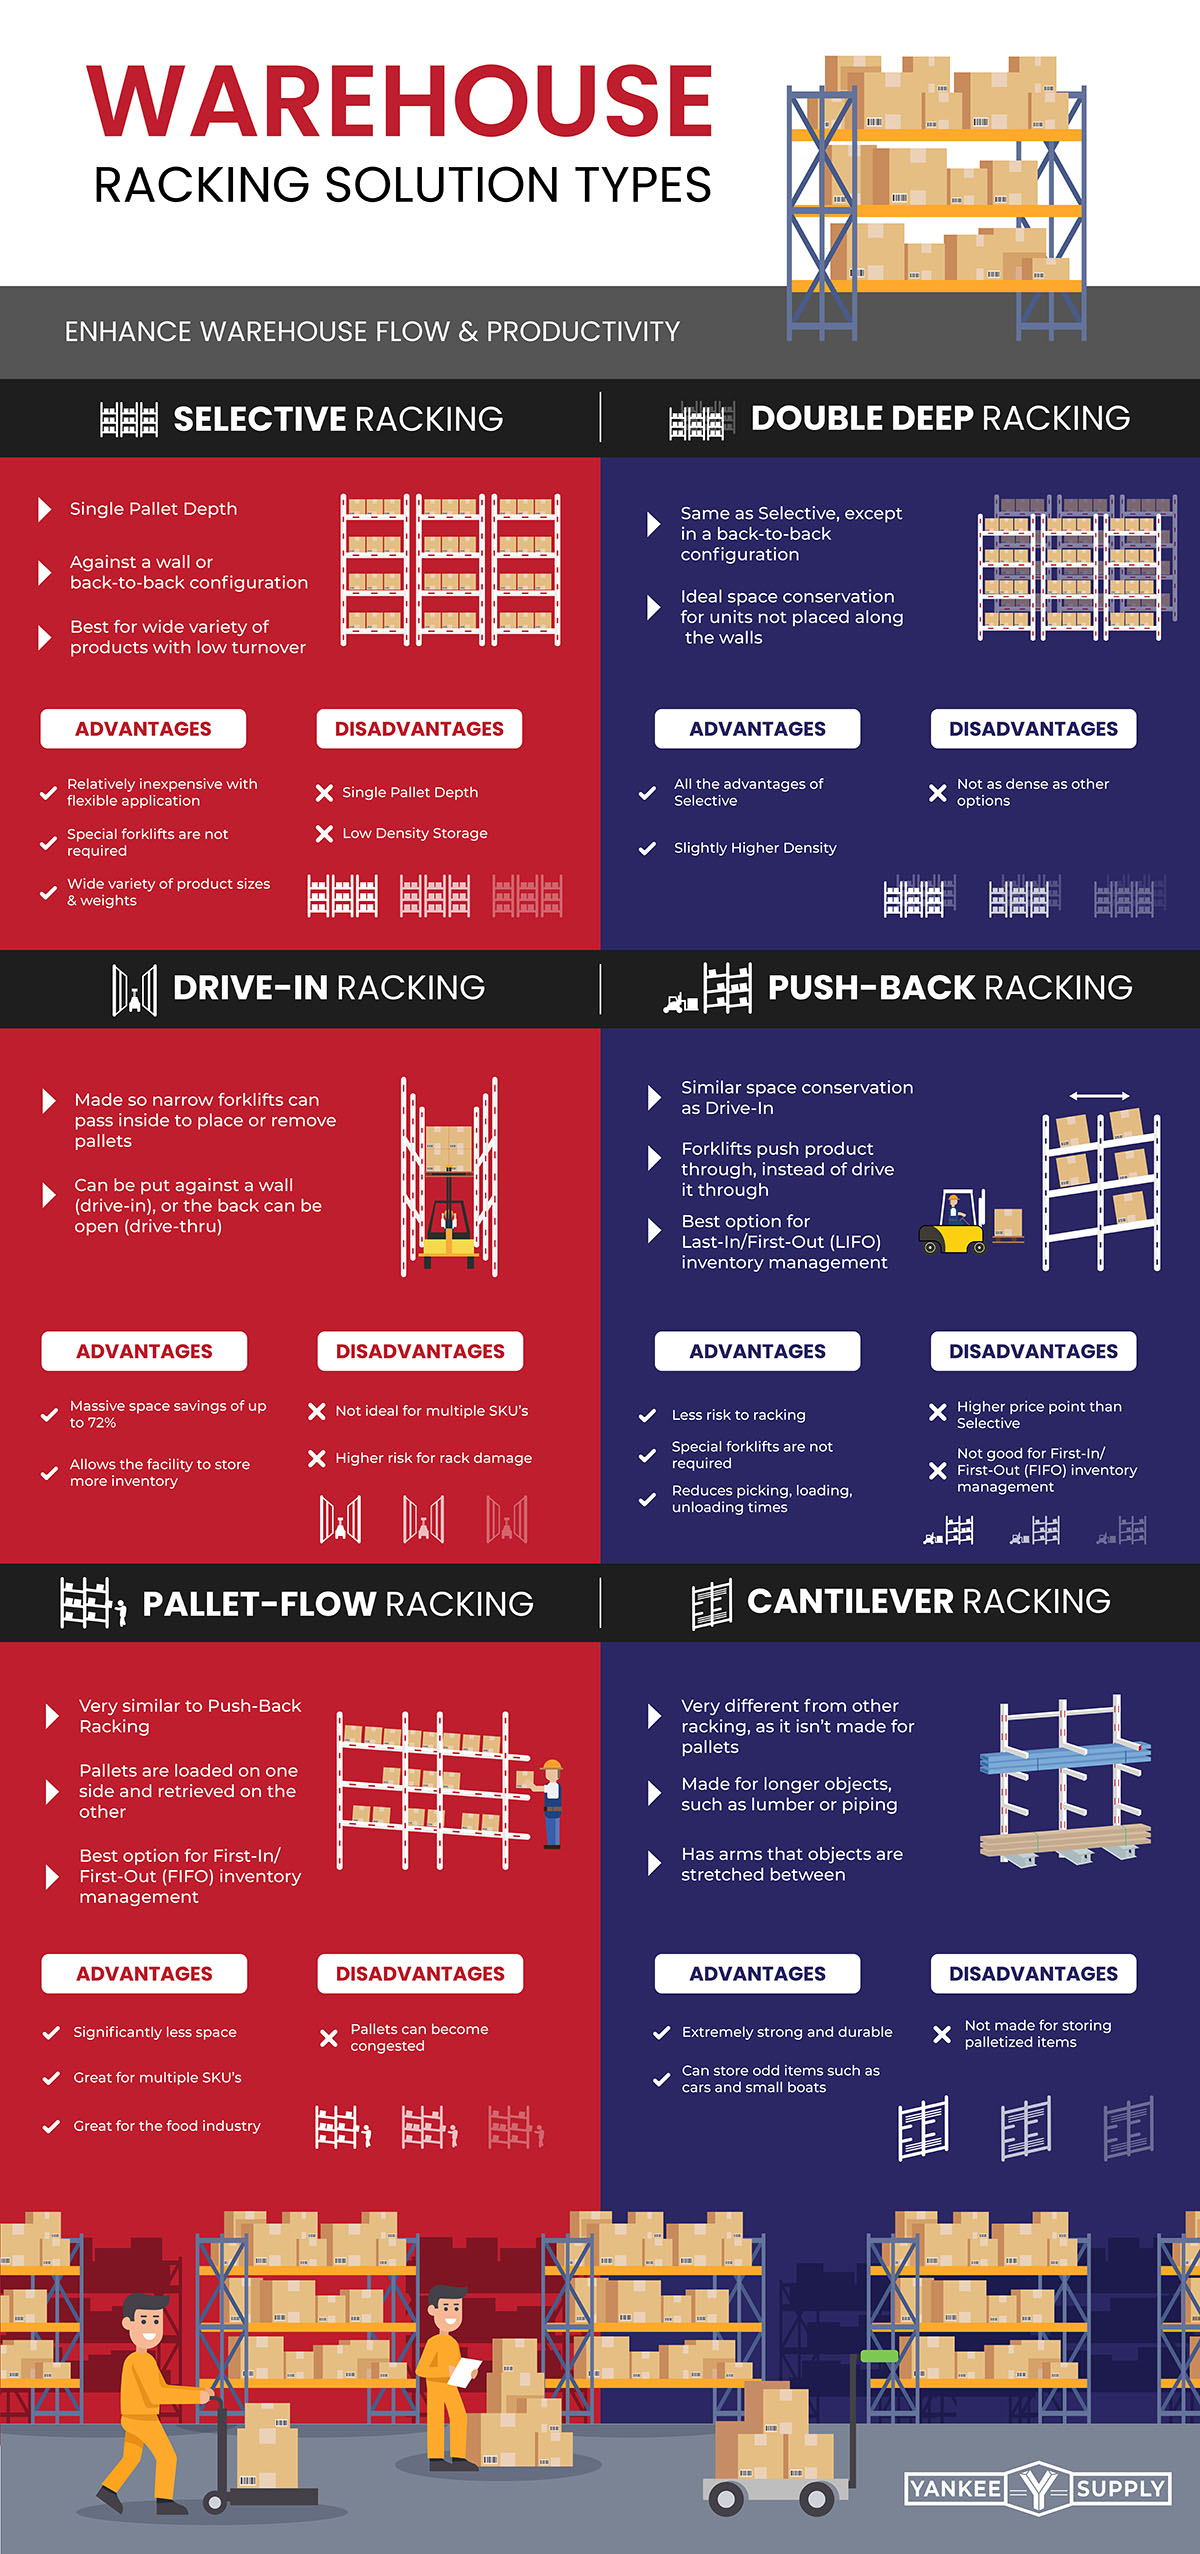 Warehouse Racking Solution Types